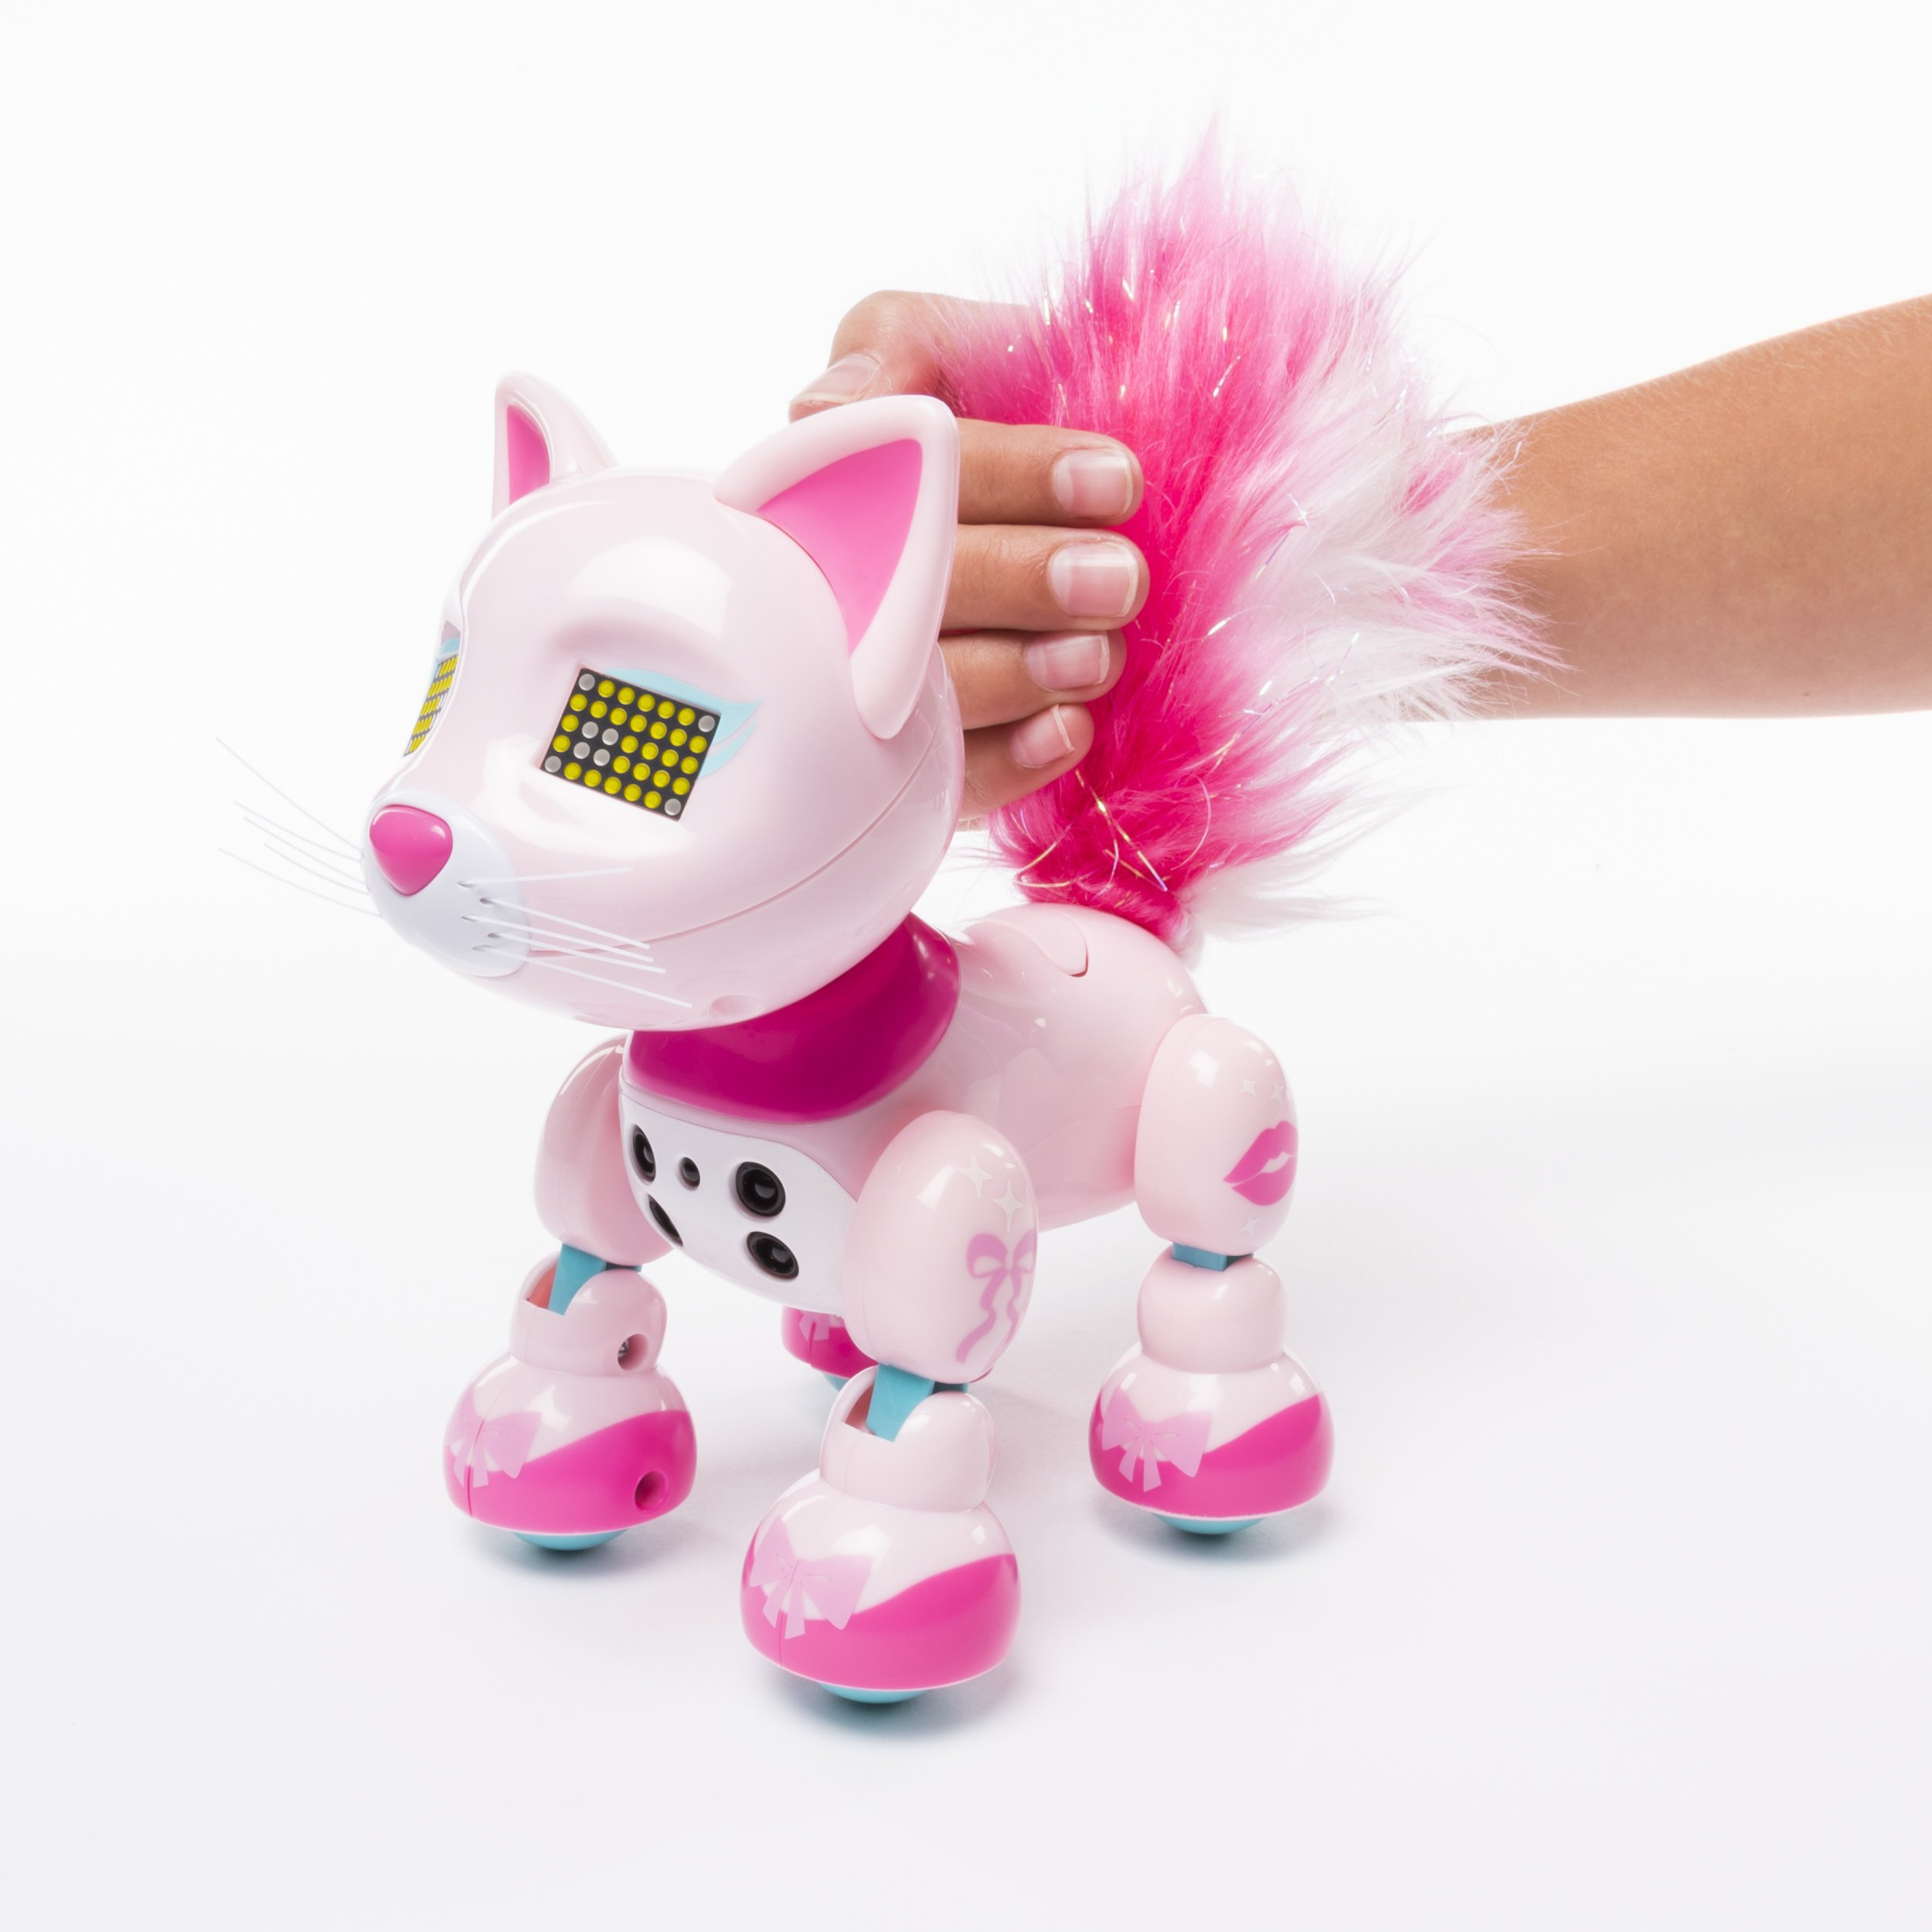 Zoomer Meowzies, Chic, Interactive Kitten with Lights, Sounds and Sensors by Zoomer (Image #4)